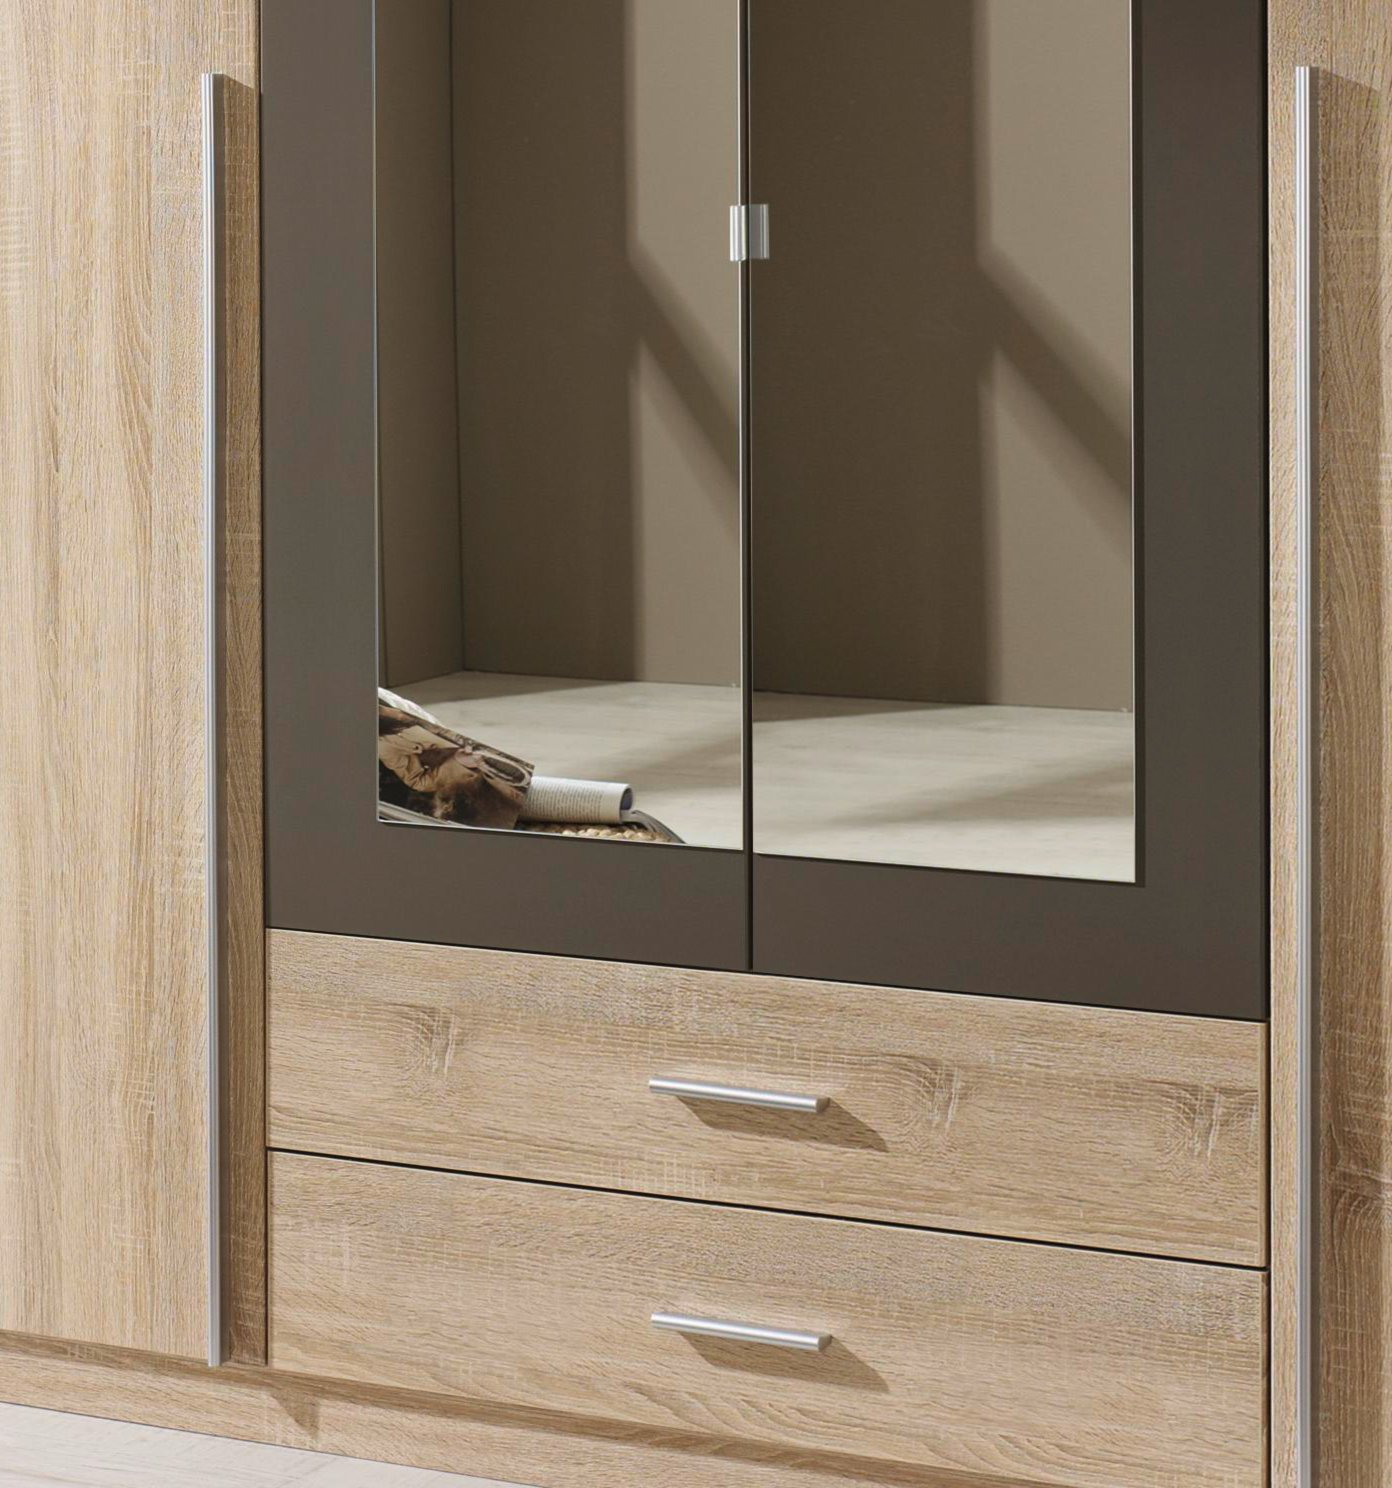 kleiderschrank krefeld sonoma eiche grau 181 cm ebay. Black Bedroom Furniture Sets. Home Design Ideas